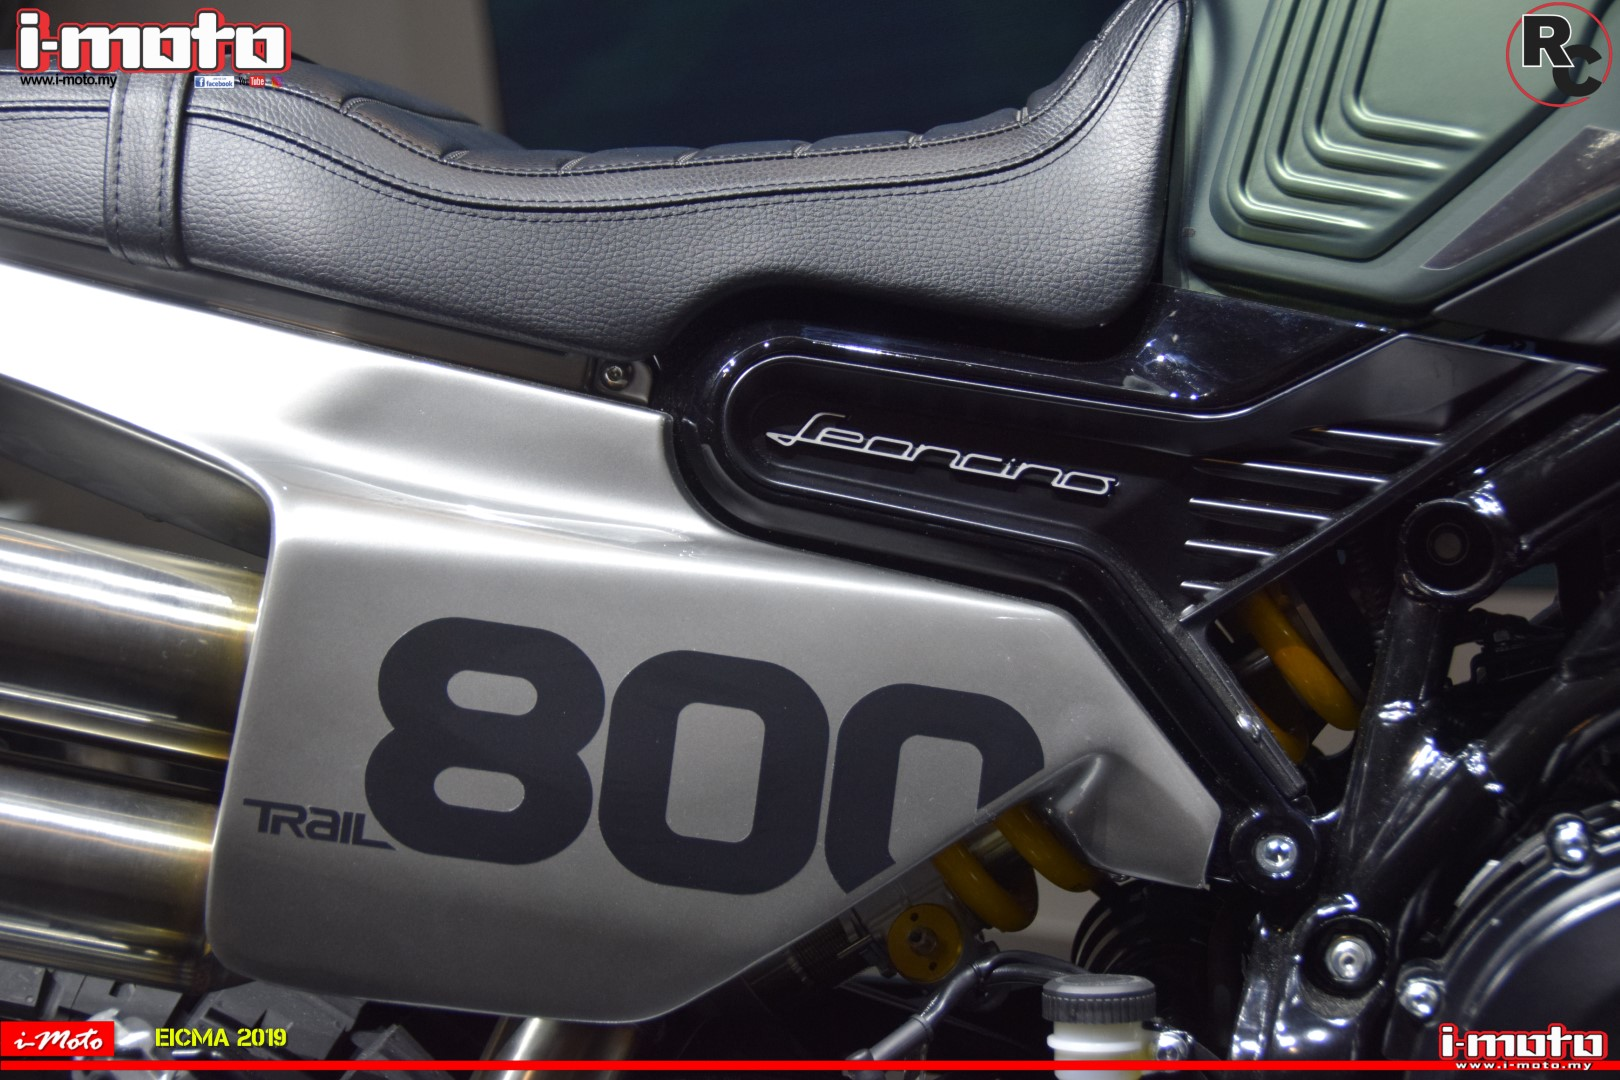 EICMA 2019 | LAUNCHED: 2020 BENELLI LEONCINO 800 TRAIL VERSION | 754 CC | 81.6 HP | 67 NM